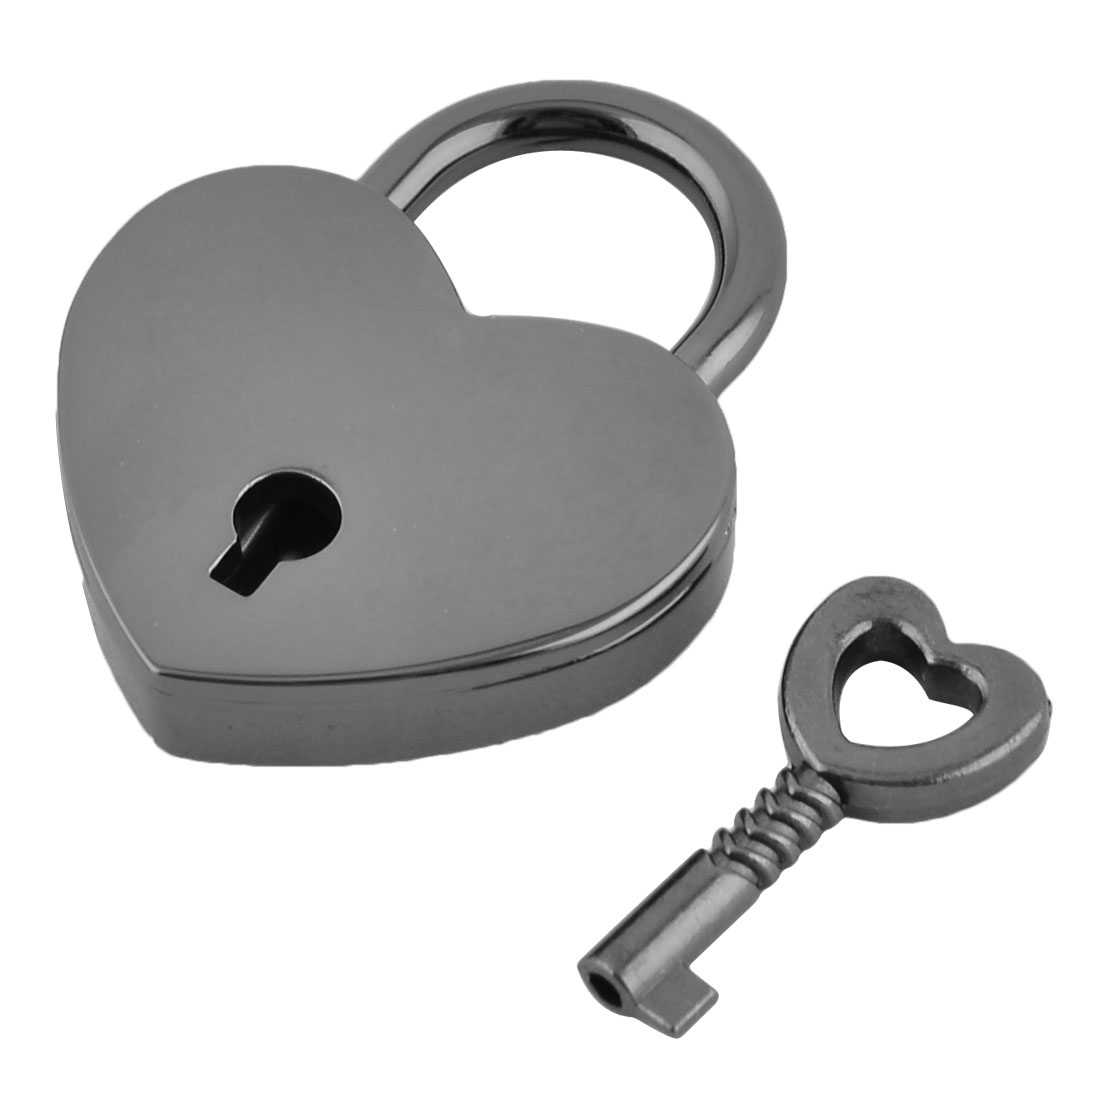 Drawer Suitcase Metal Heart Shaped Security Lock Padlock Black w